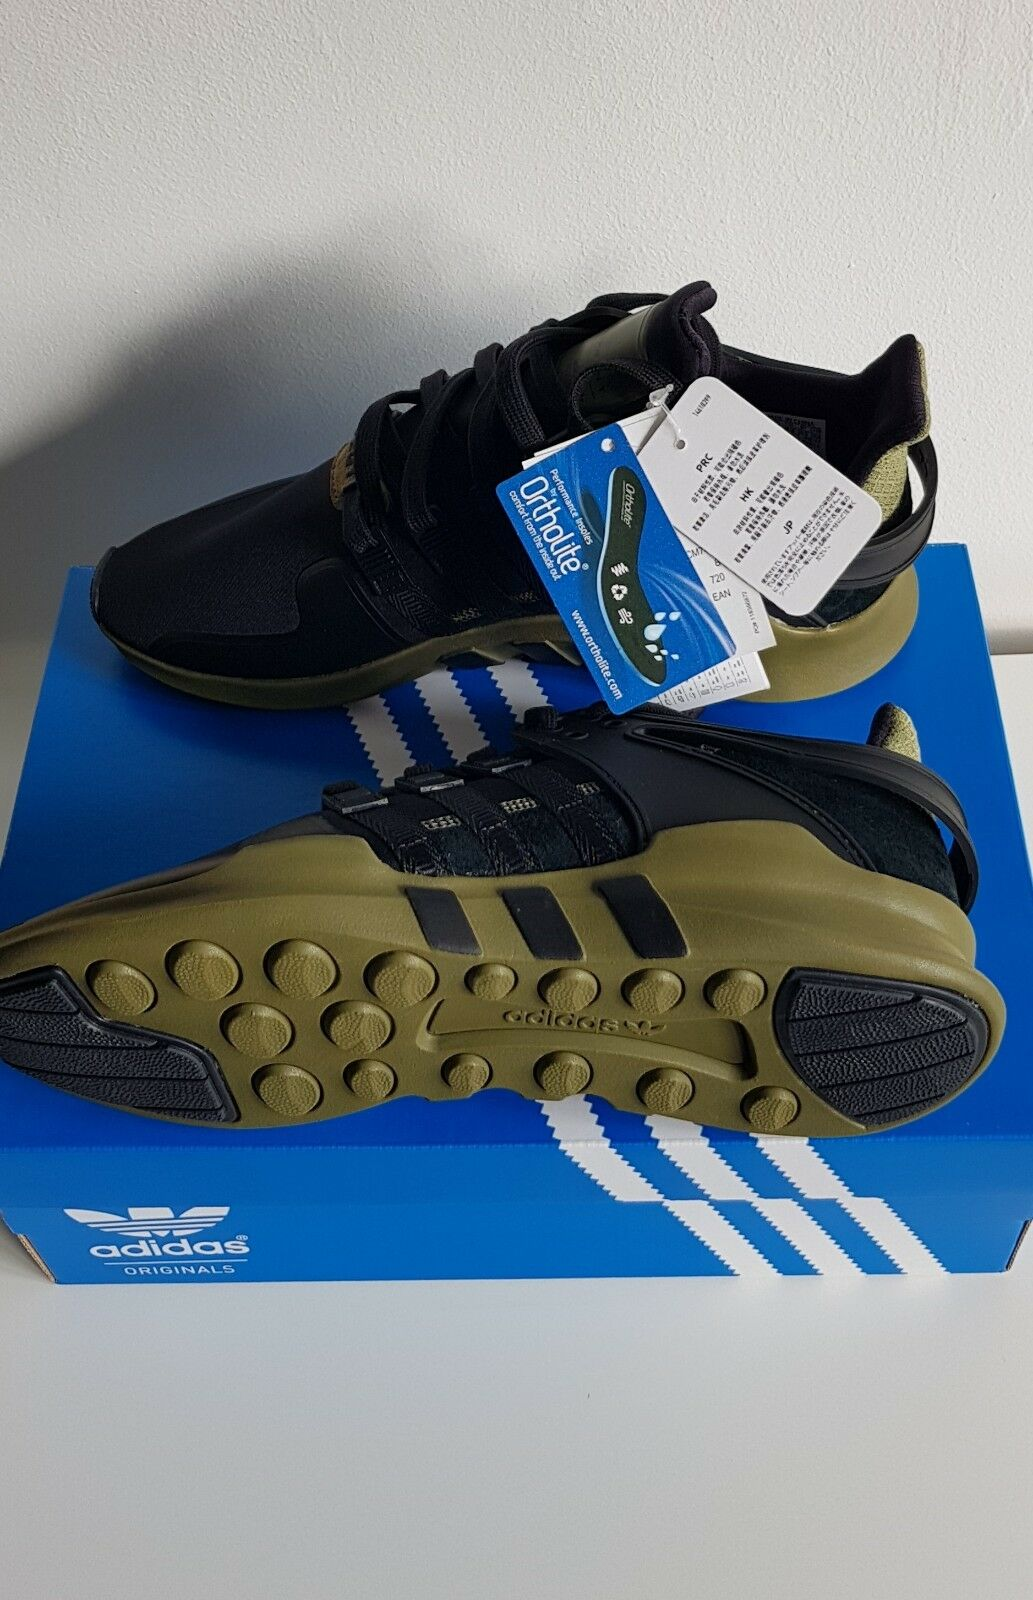 Adidas EQT Support ADV Olive 91 16 Noir Olive ADV Cargo Homme Taille 10 CM7415 d016ed